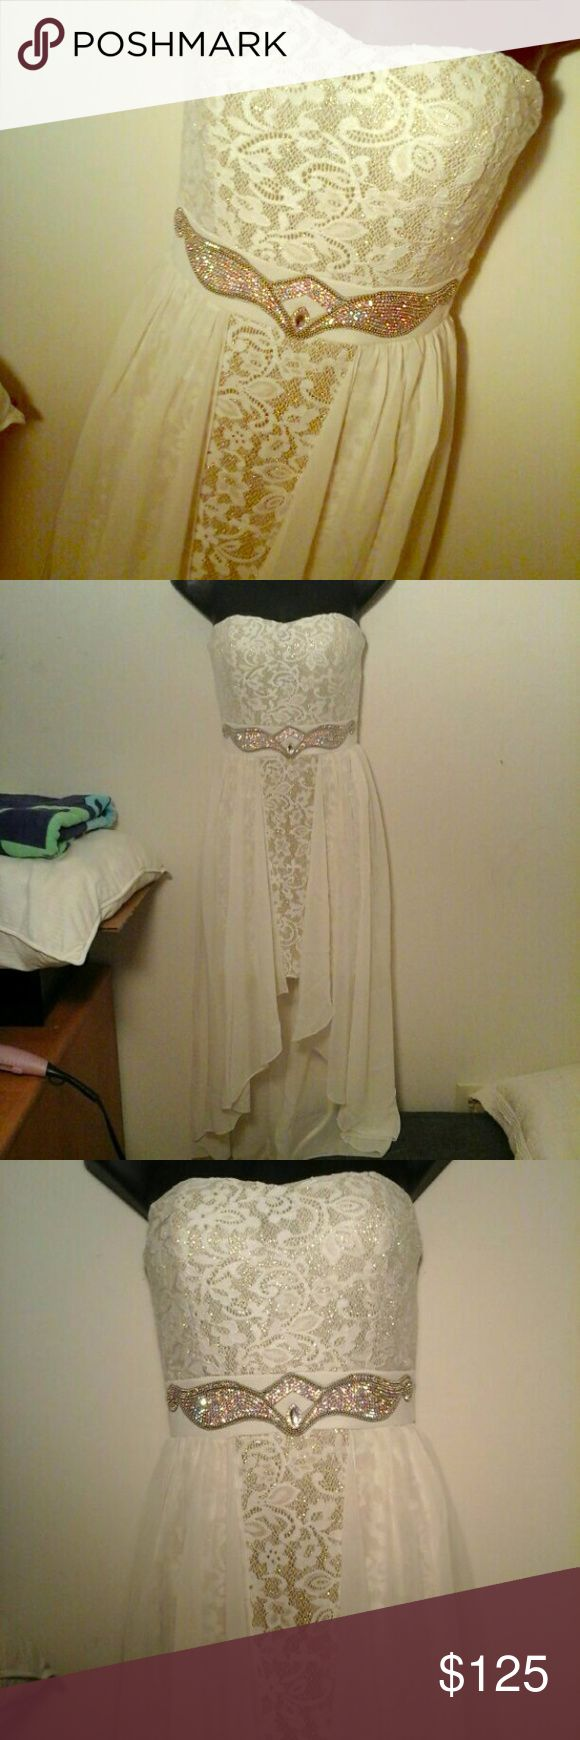 Gold/Cream Formal Dress Gold and cream formal dress. Size small. Dresses High Low